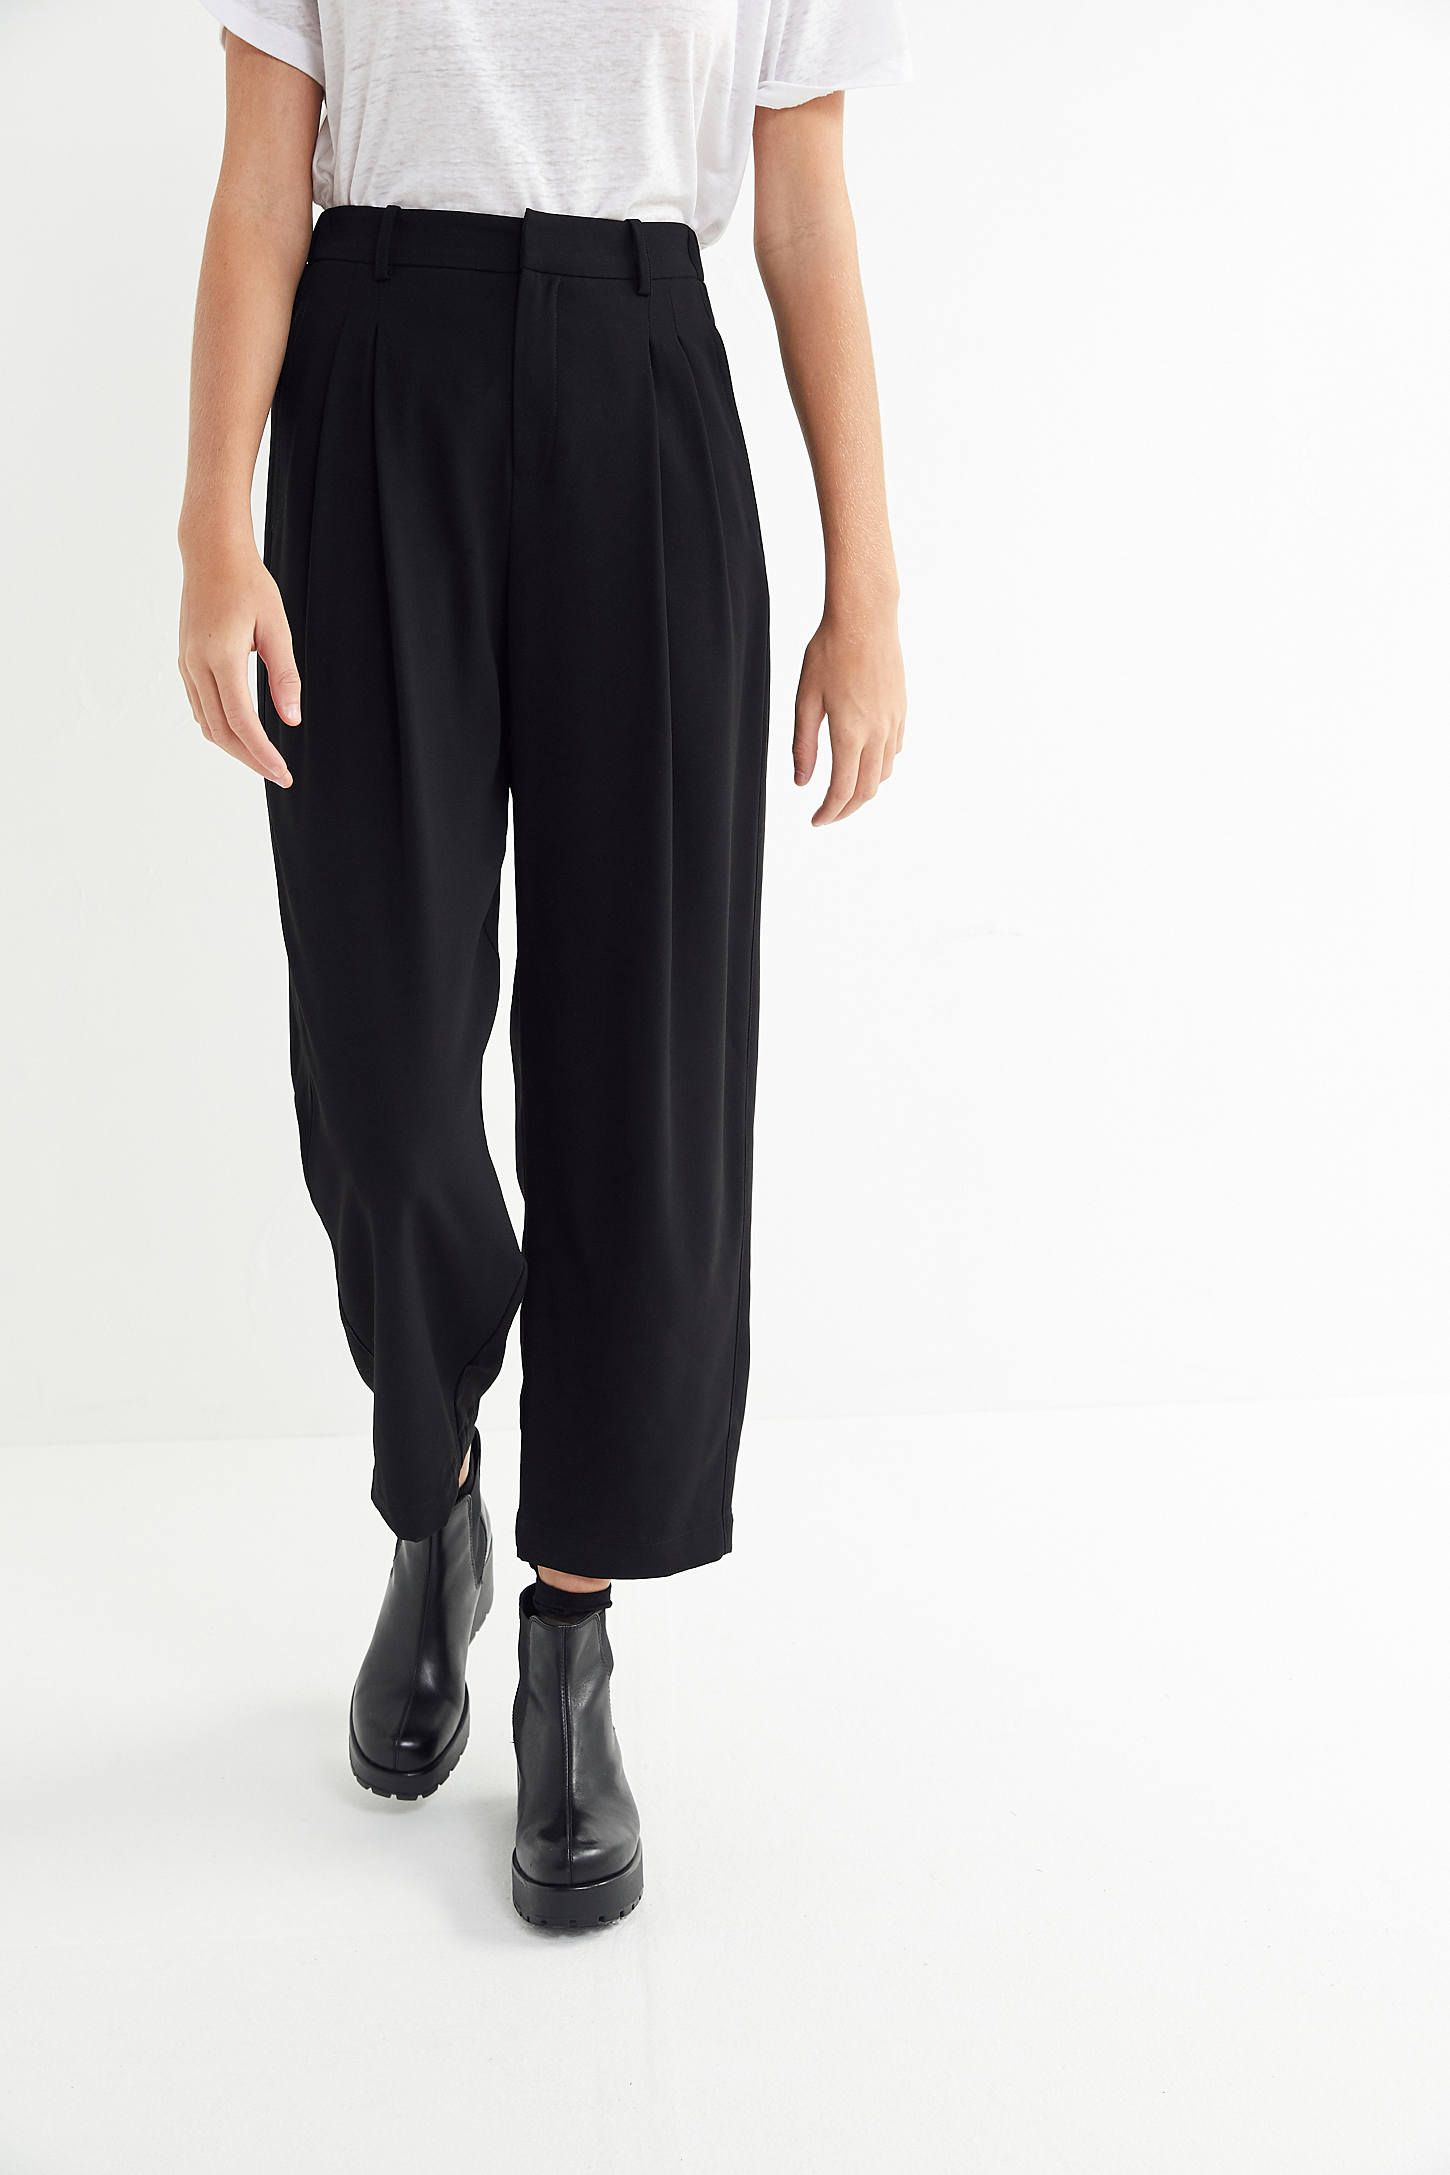 UO Arlo Pleated Pant in 2019  93f0ca08662